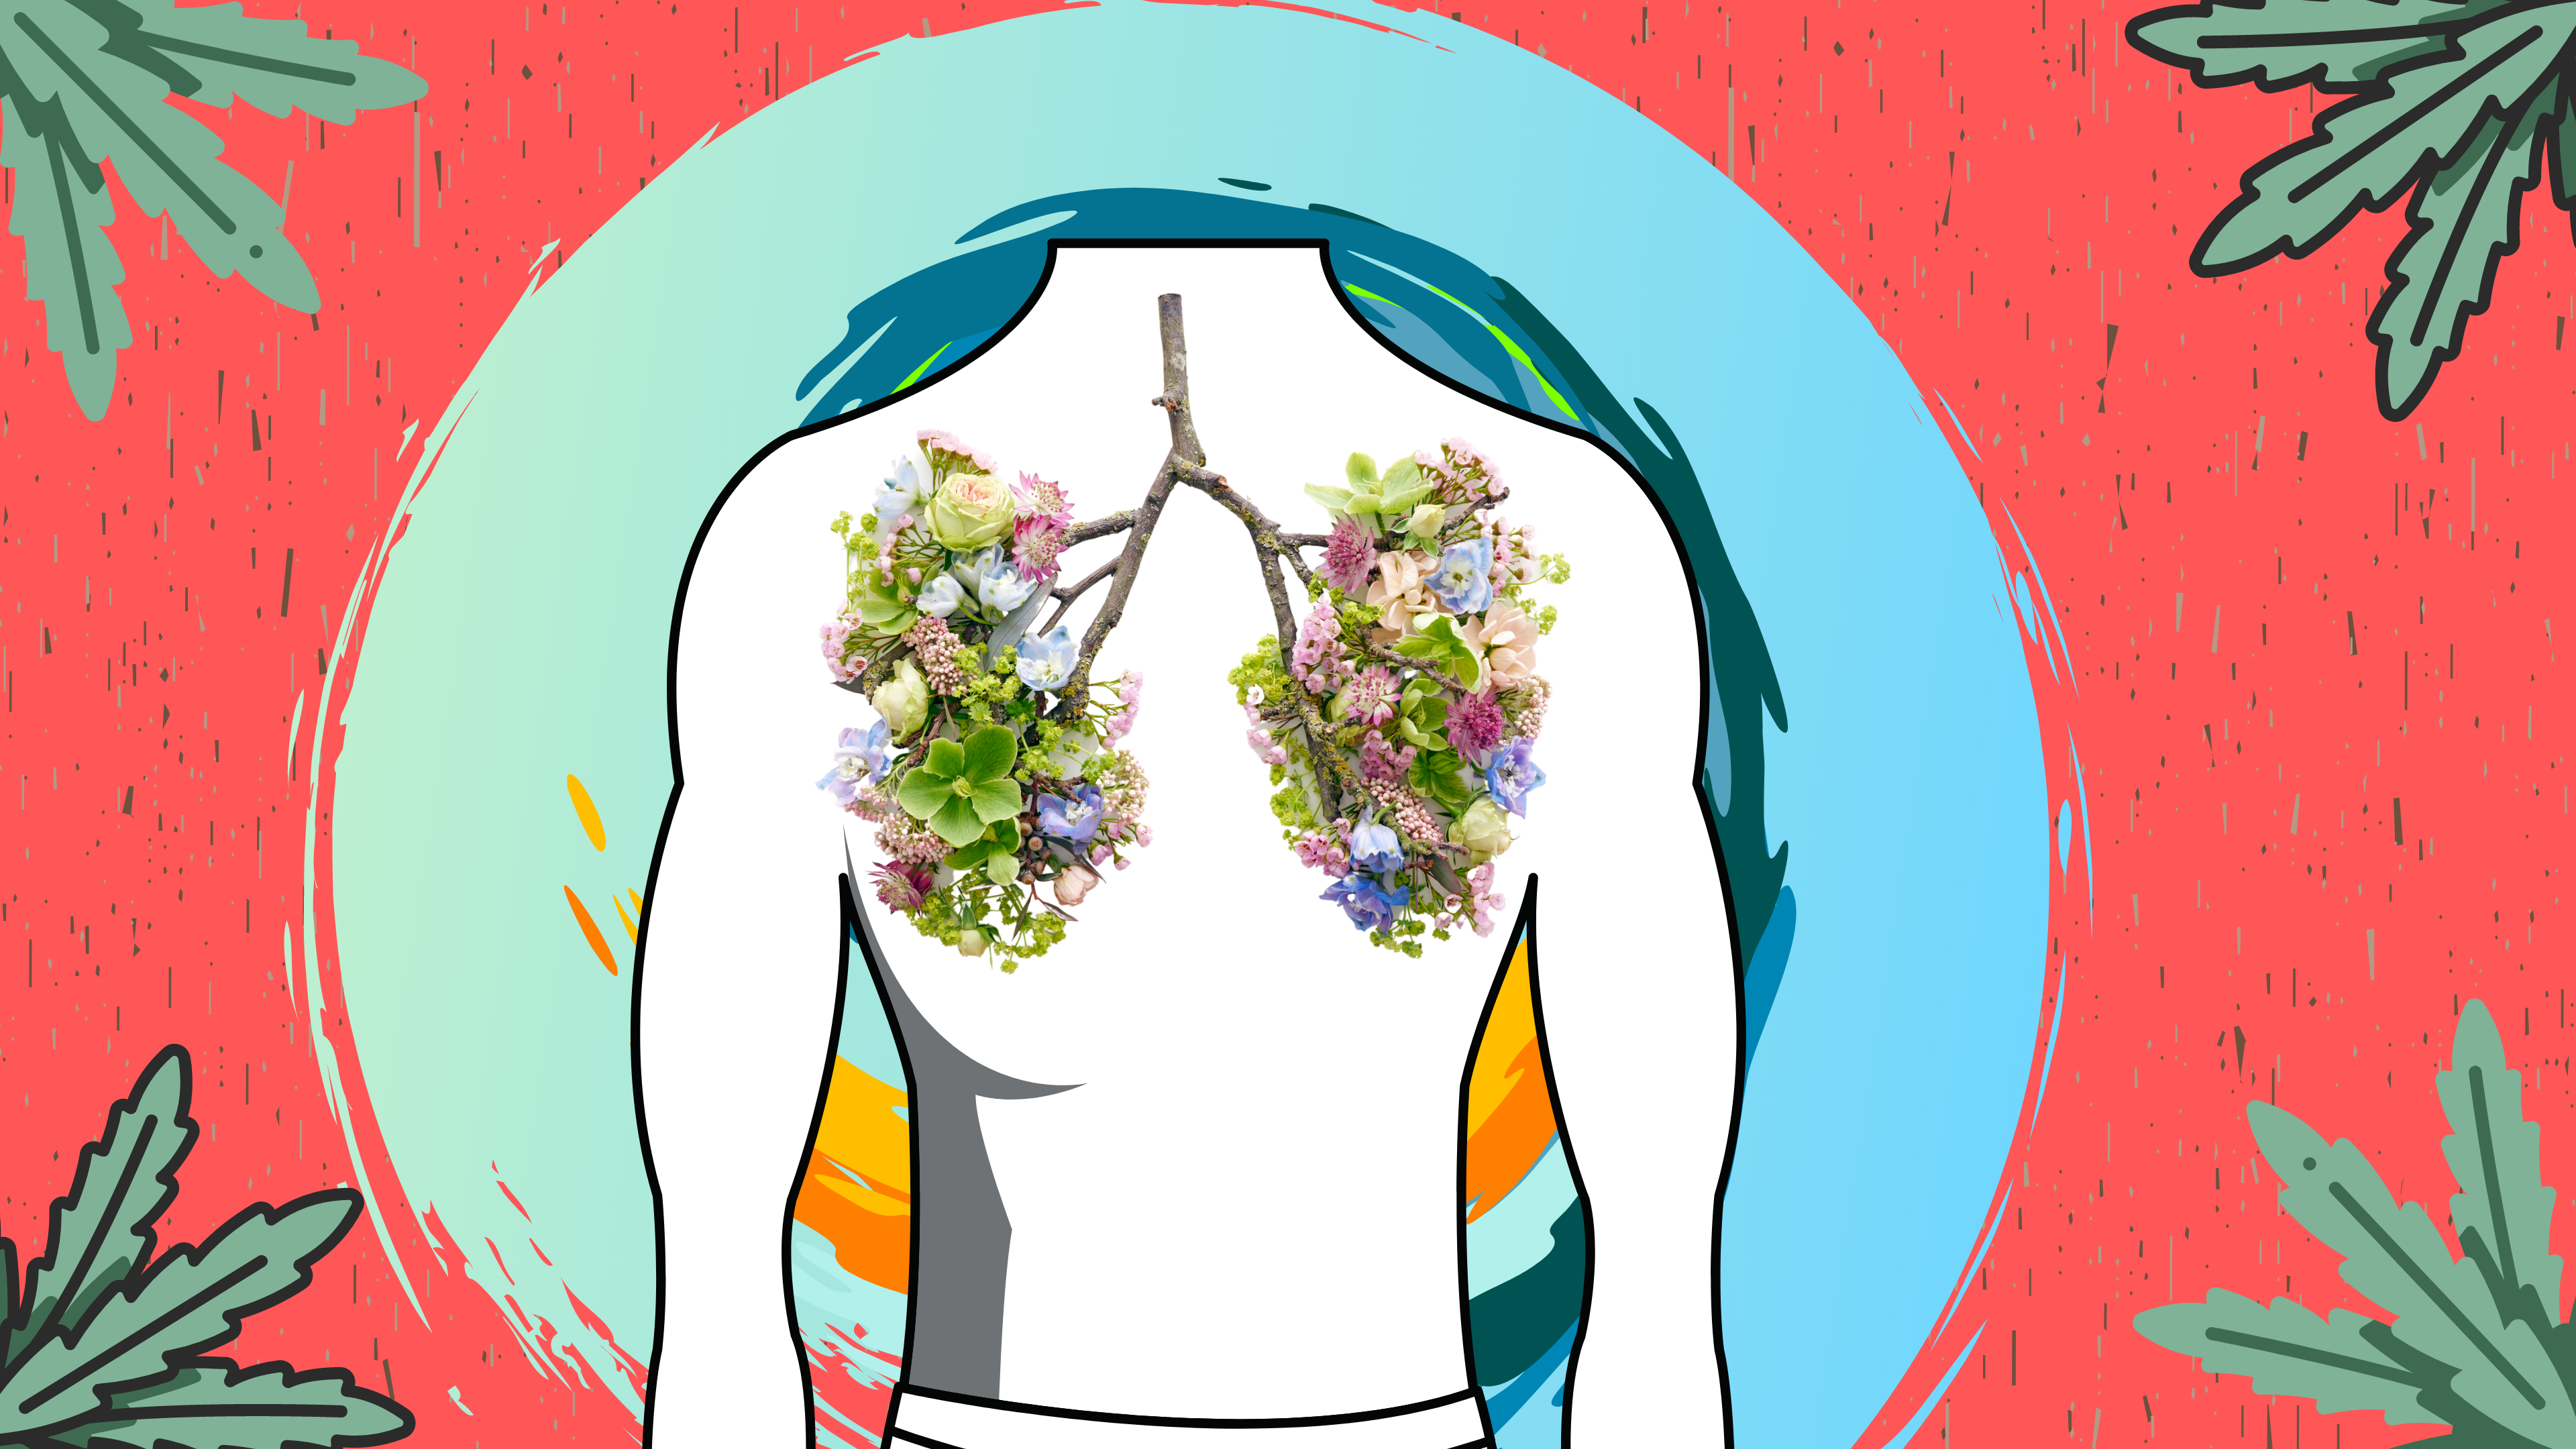 A human torso with flower lungs on a red and blue background. In the corners there are four plants.